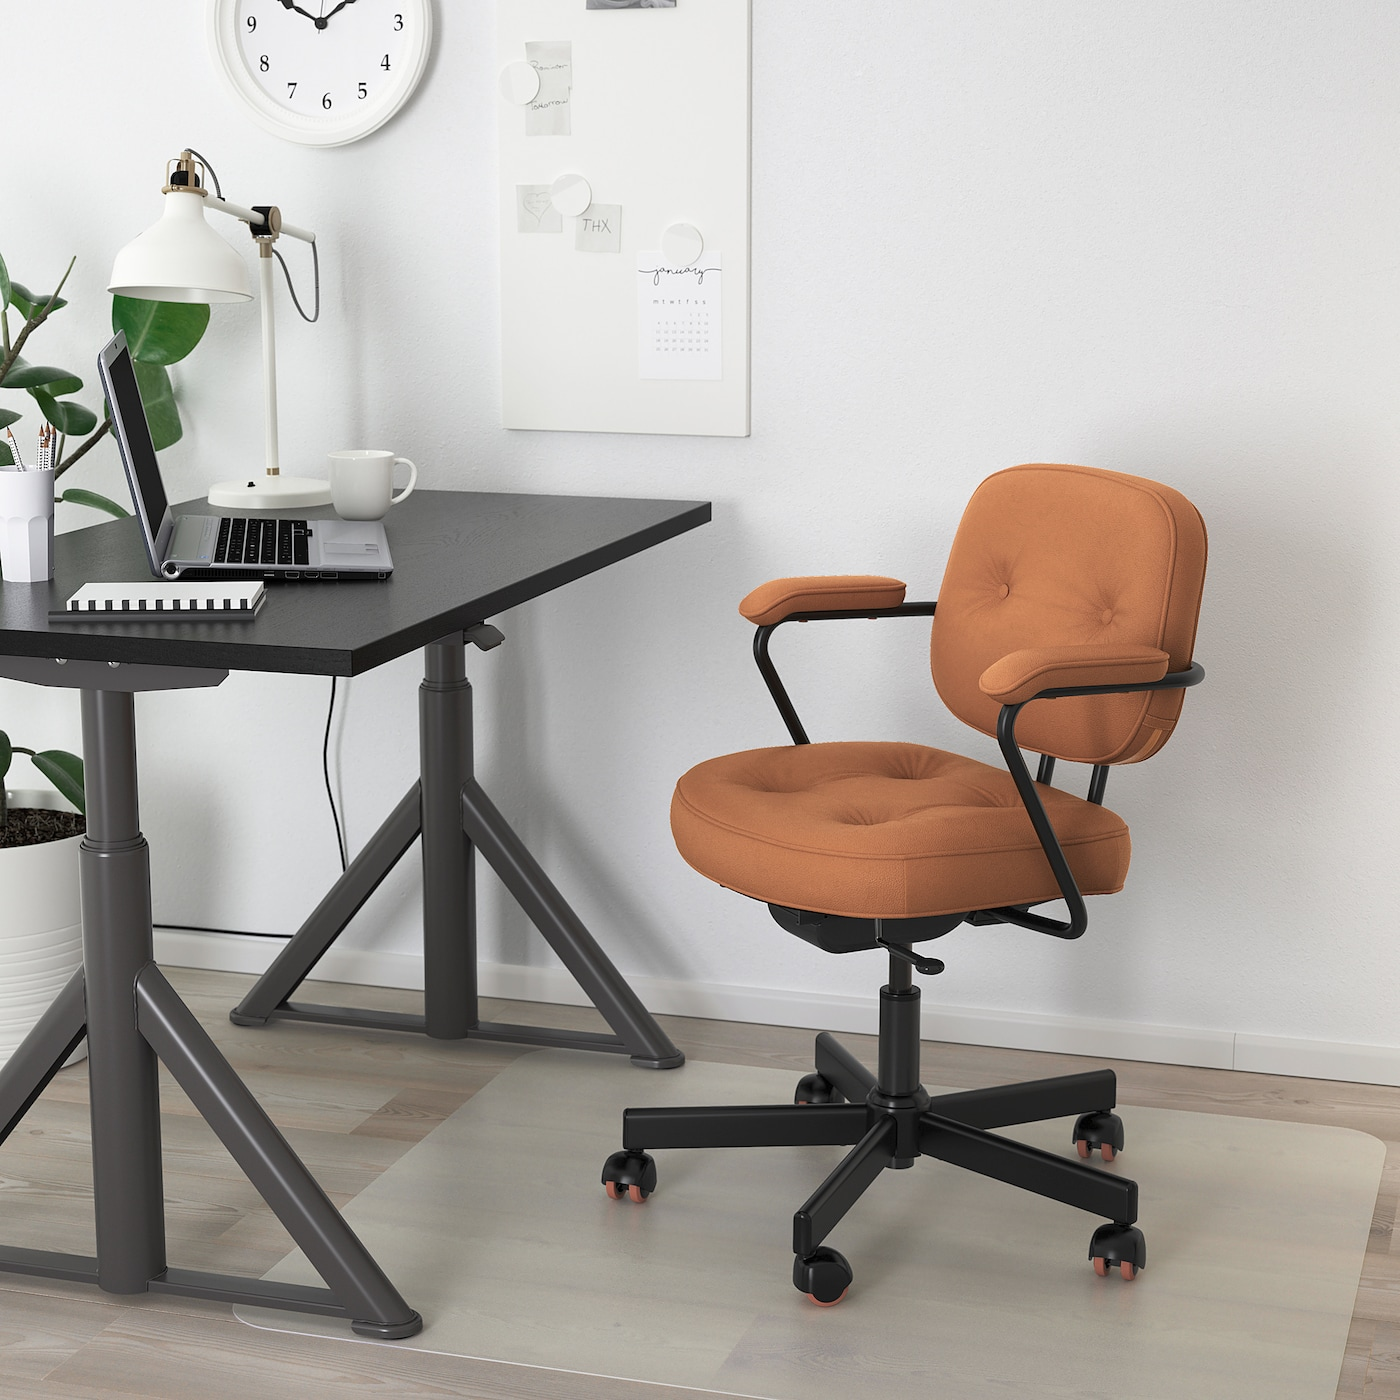 ALEFJÄLL Office chair - Grann golden brown